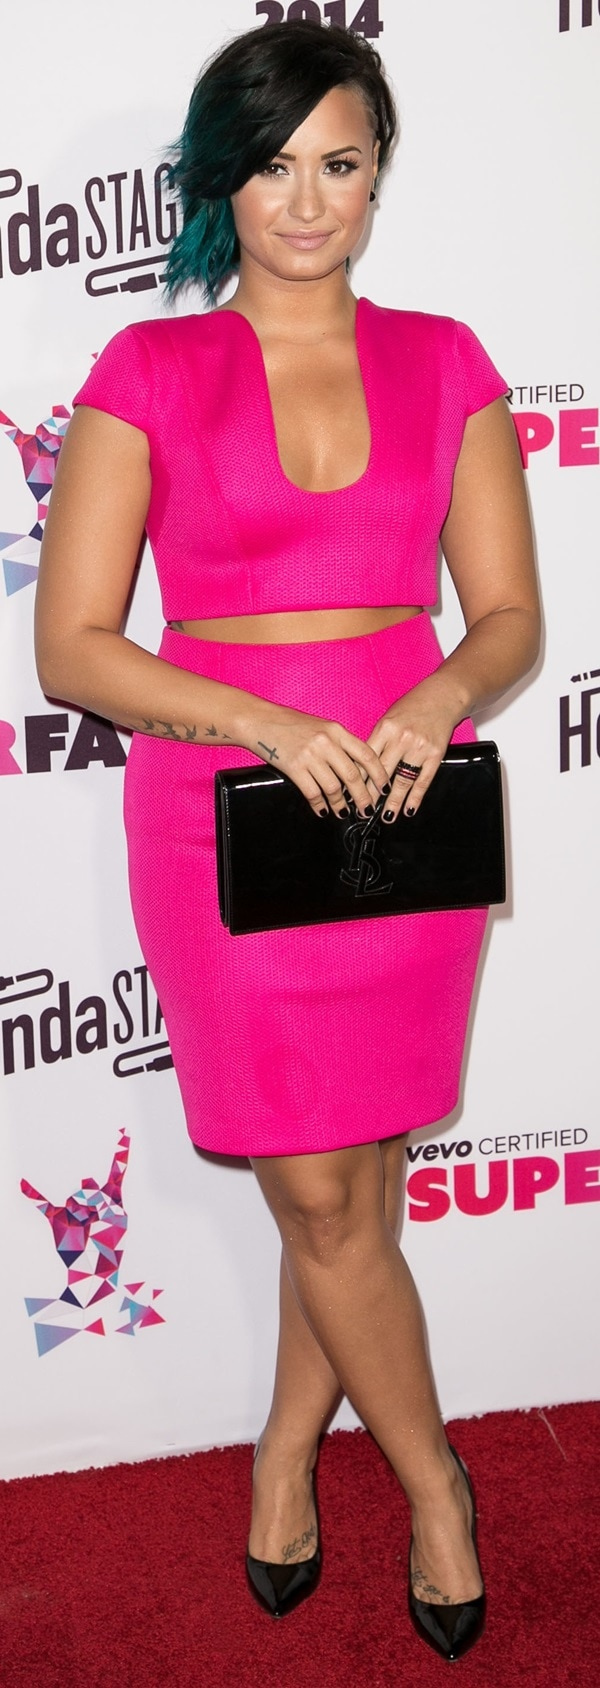 Demi Lovato showed off her toned figure in a crop top and skirt combo, exposing her midriff and cleavage